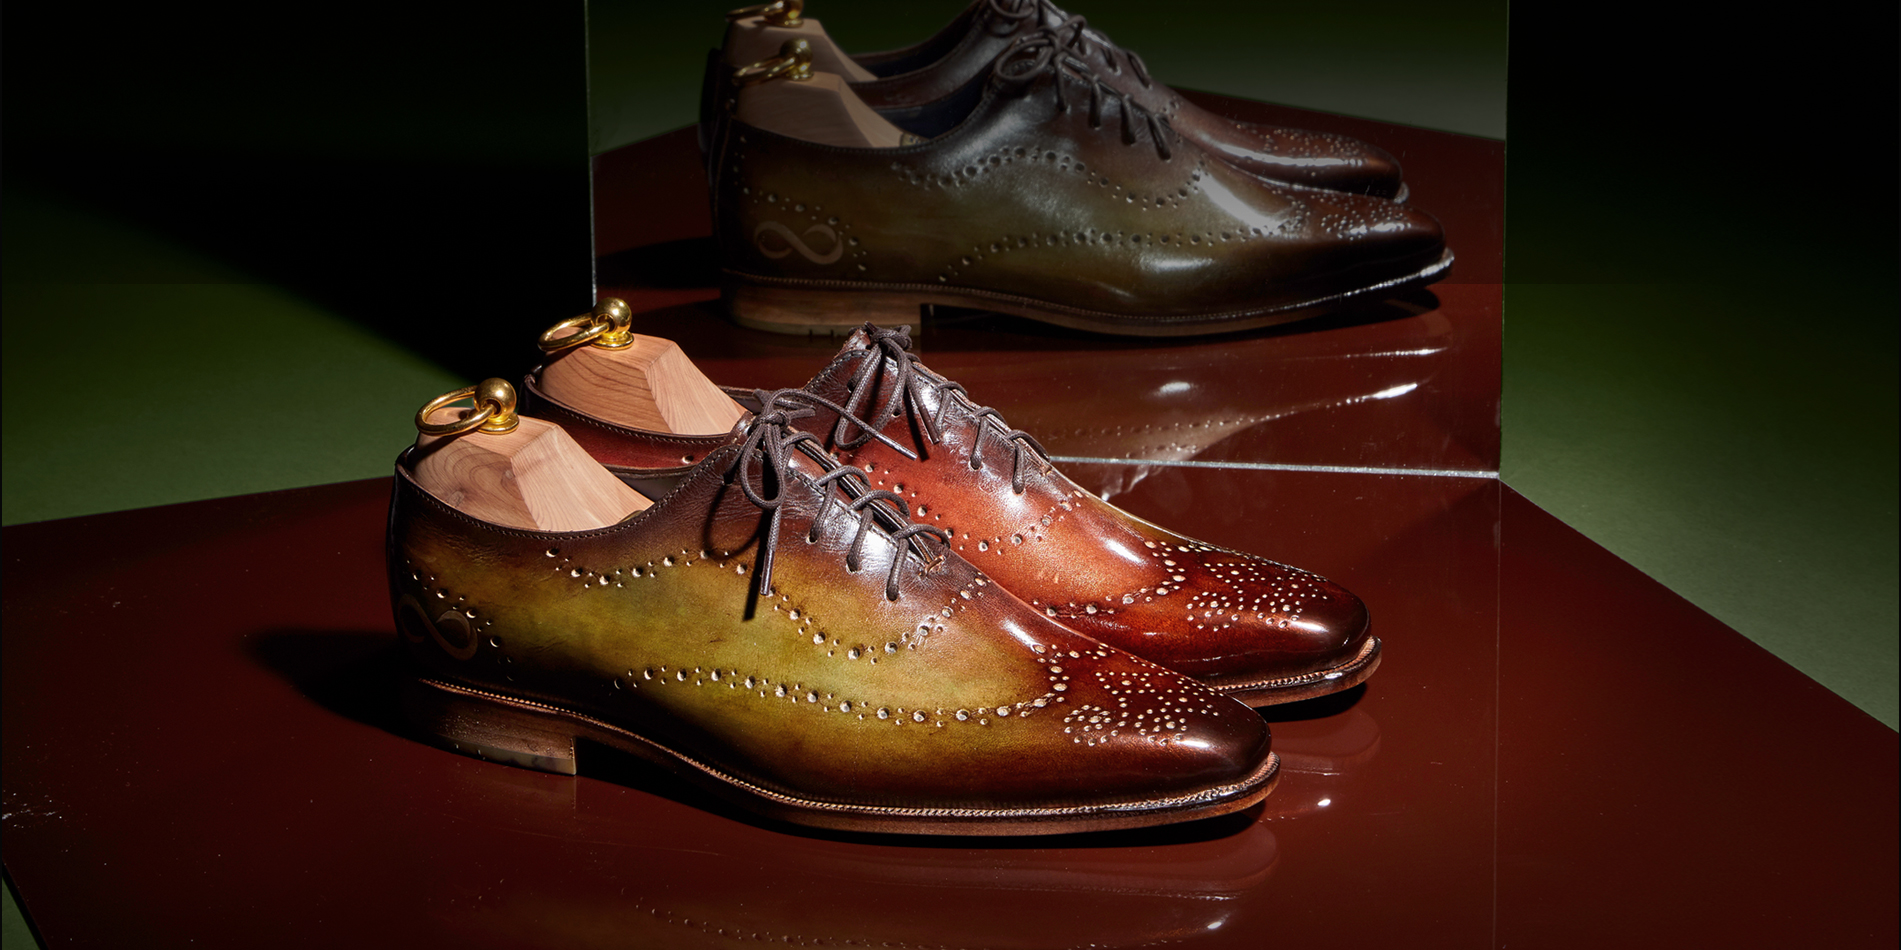 iTailor Shoes,Bespoke shoes,iShoes made to measure